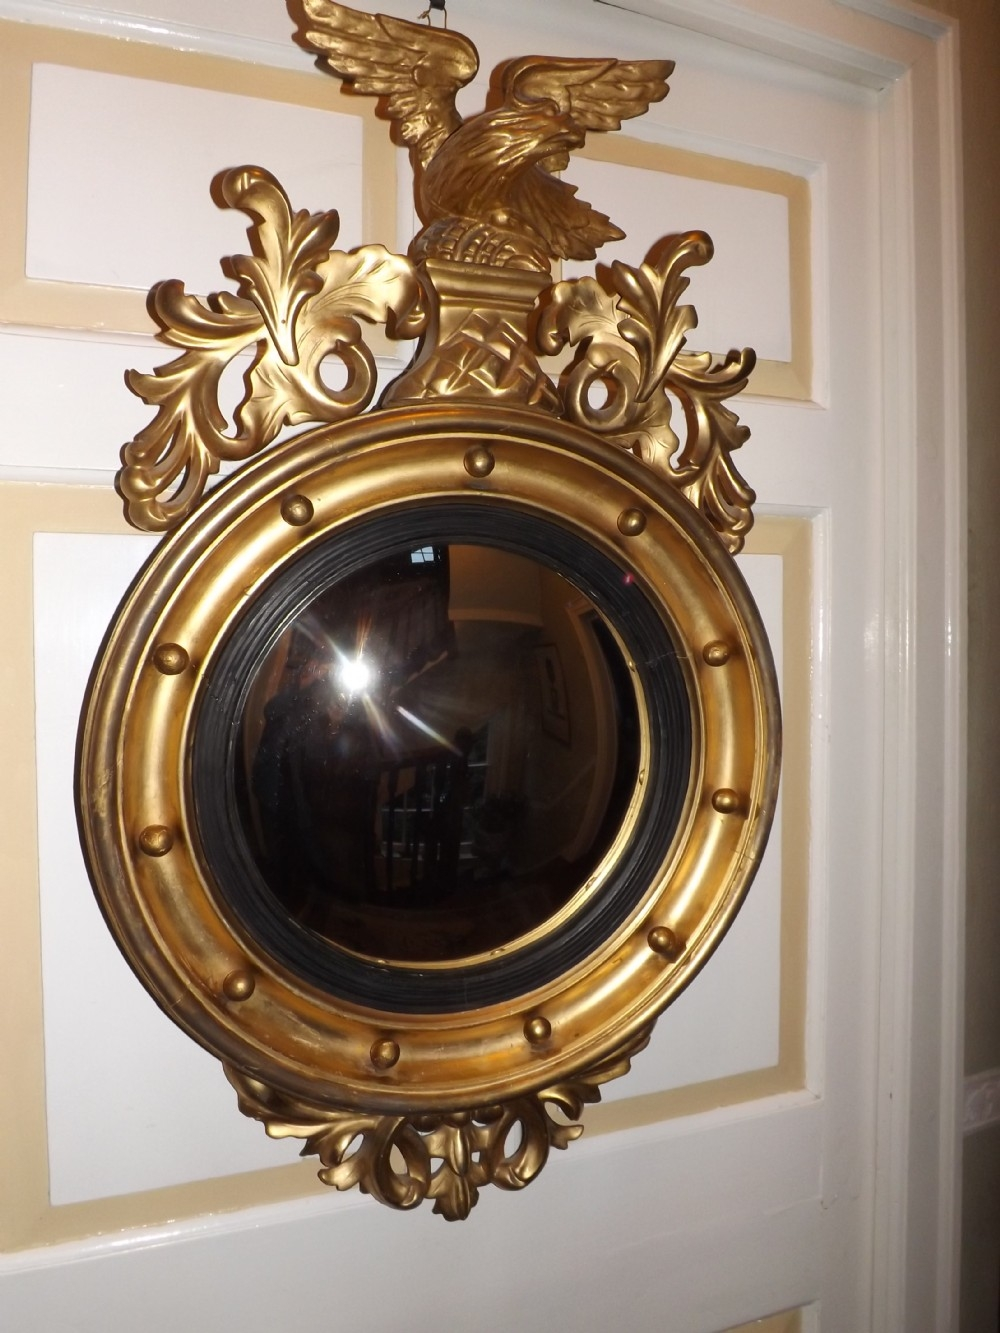 C19th Regency Period Gilt Wood Framed Convex Wall Mirror 307973 With Convex Wall Mirrors (Image 6 of 15)